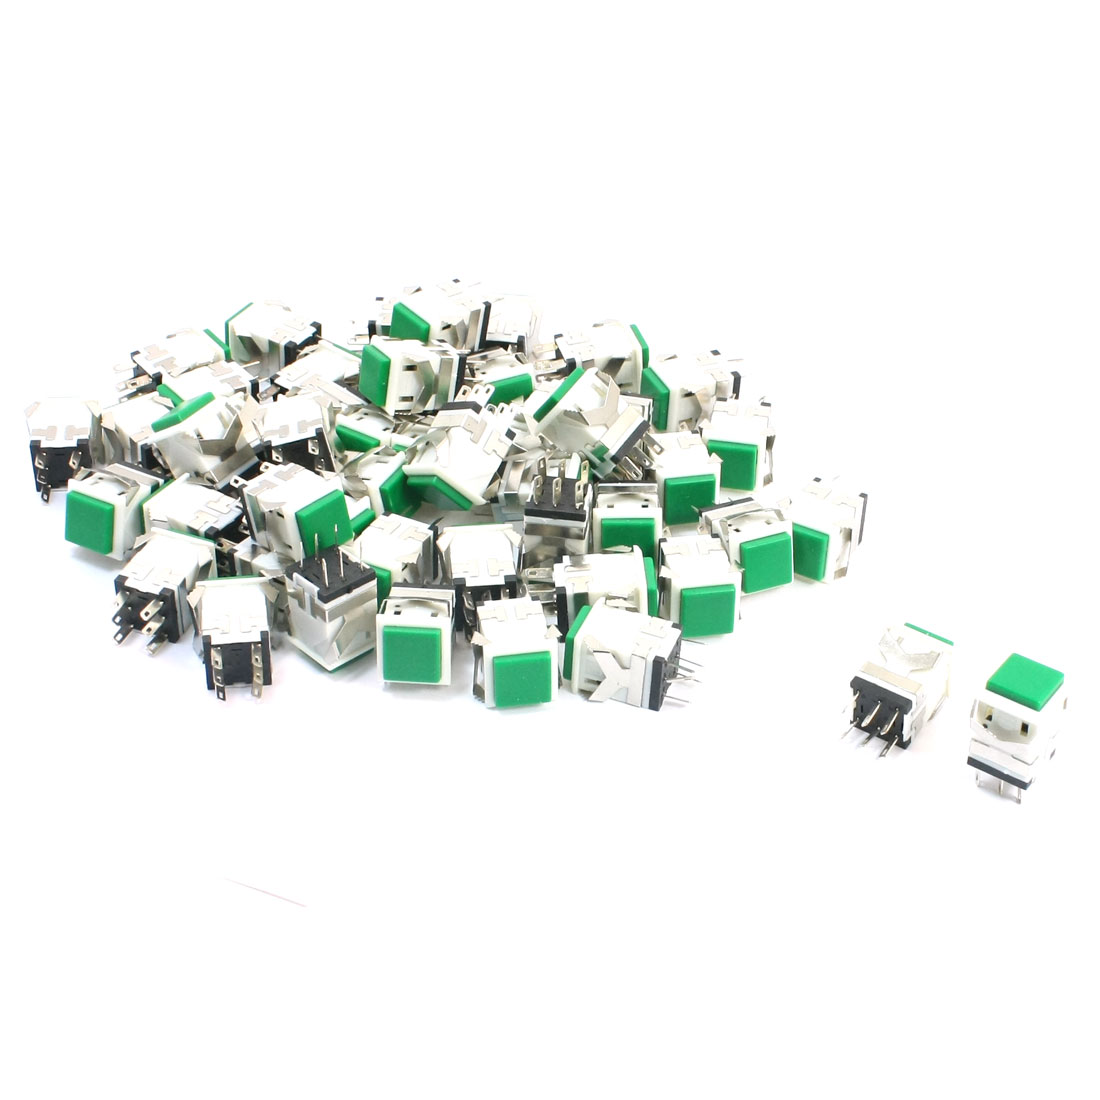 50 Pcs DPDT 6-Pin Self-setting Momentary Control Green Cap Push Button Switch